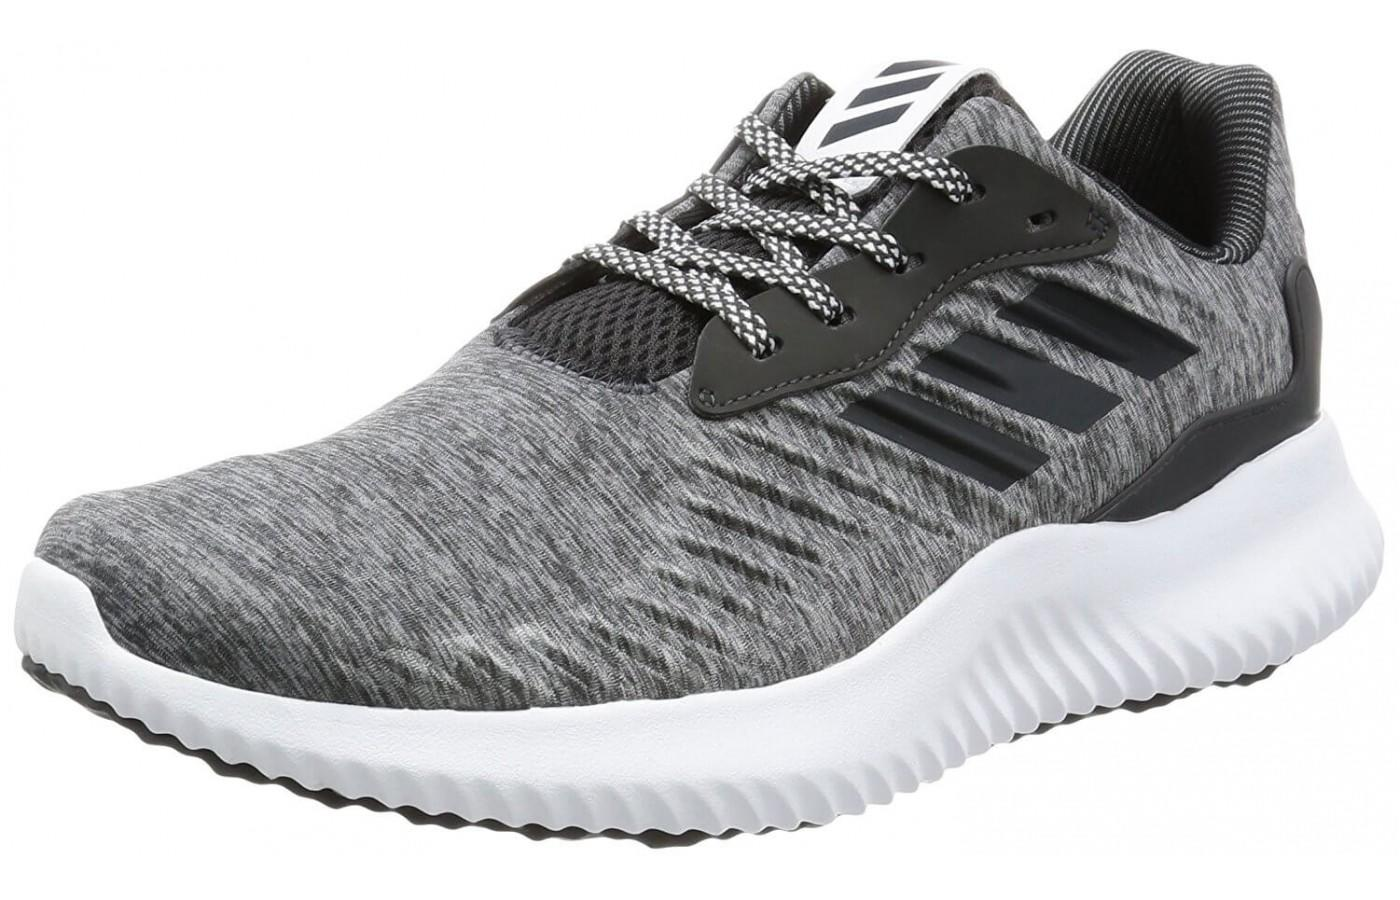 size 40 8d2e2 e8209 Adidas Alphabounce RC is a neutral shoe ...